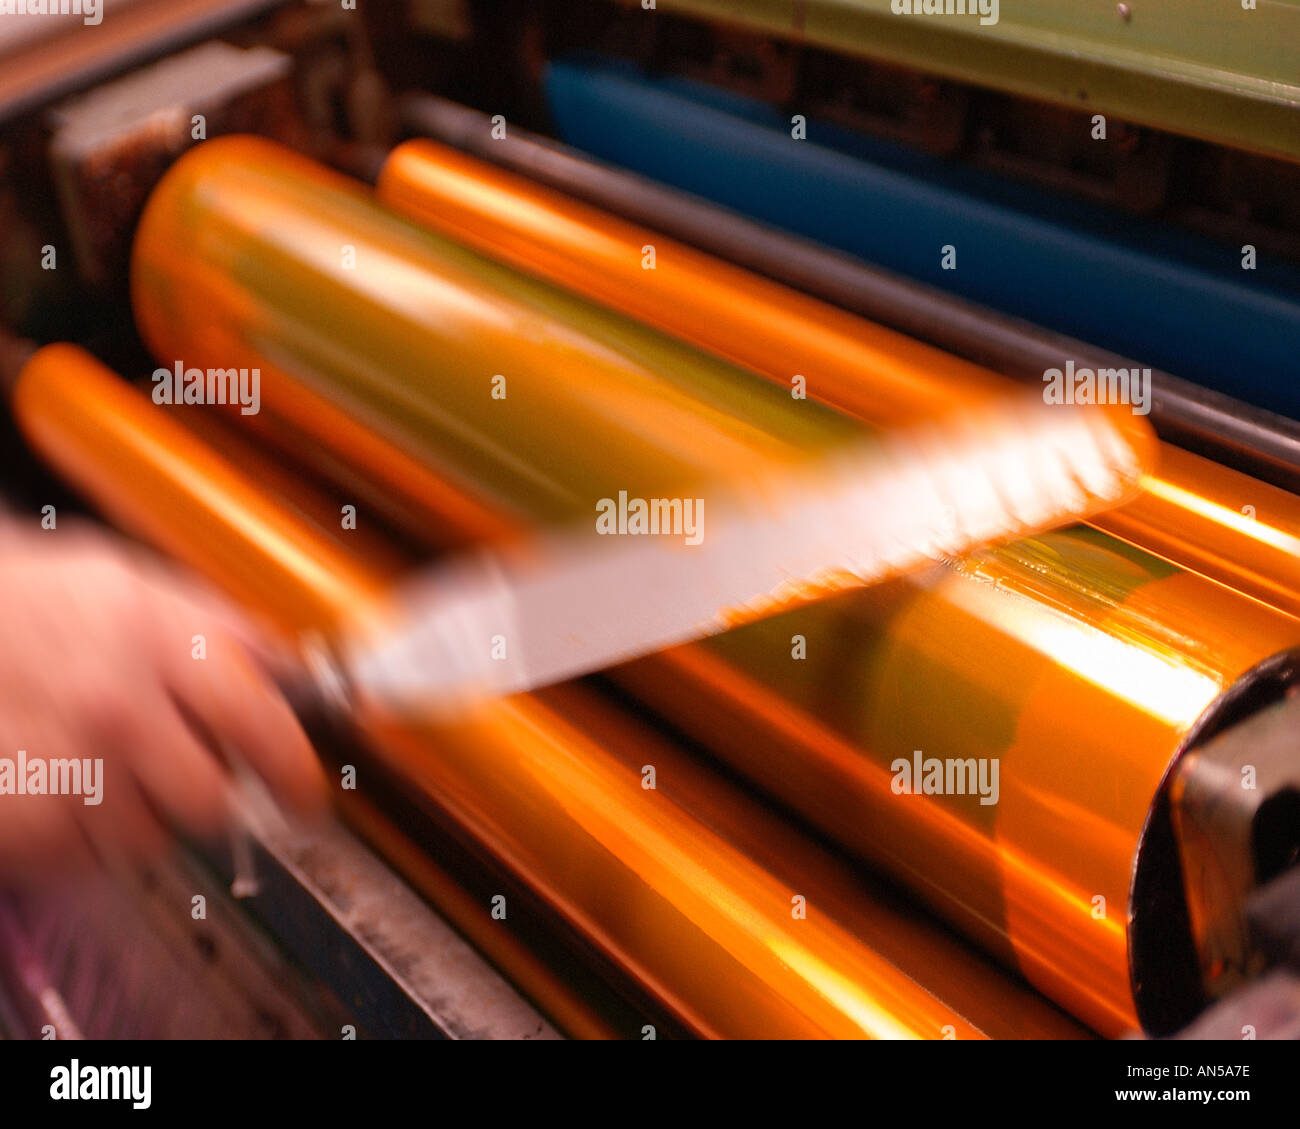 PRINTER APPLYING INK TO ROLLERS OF PRINTING PRESS - Stock Image